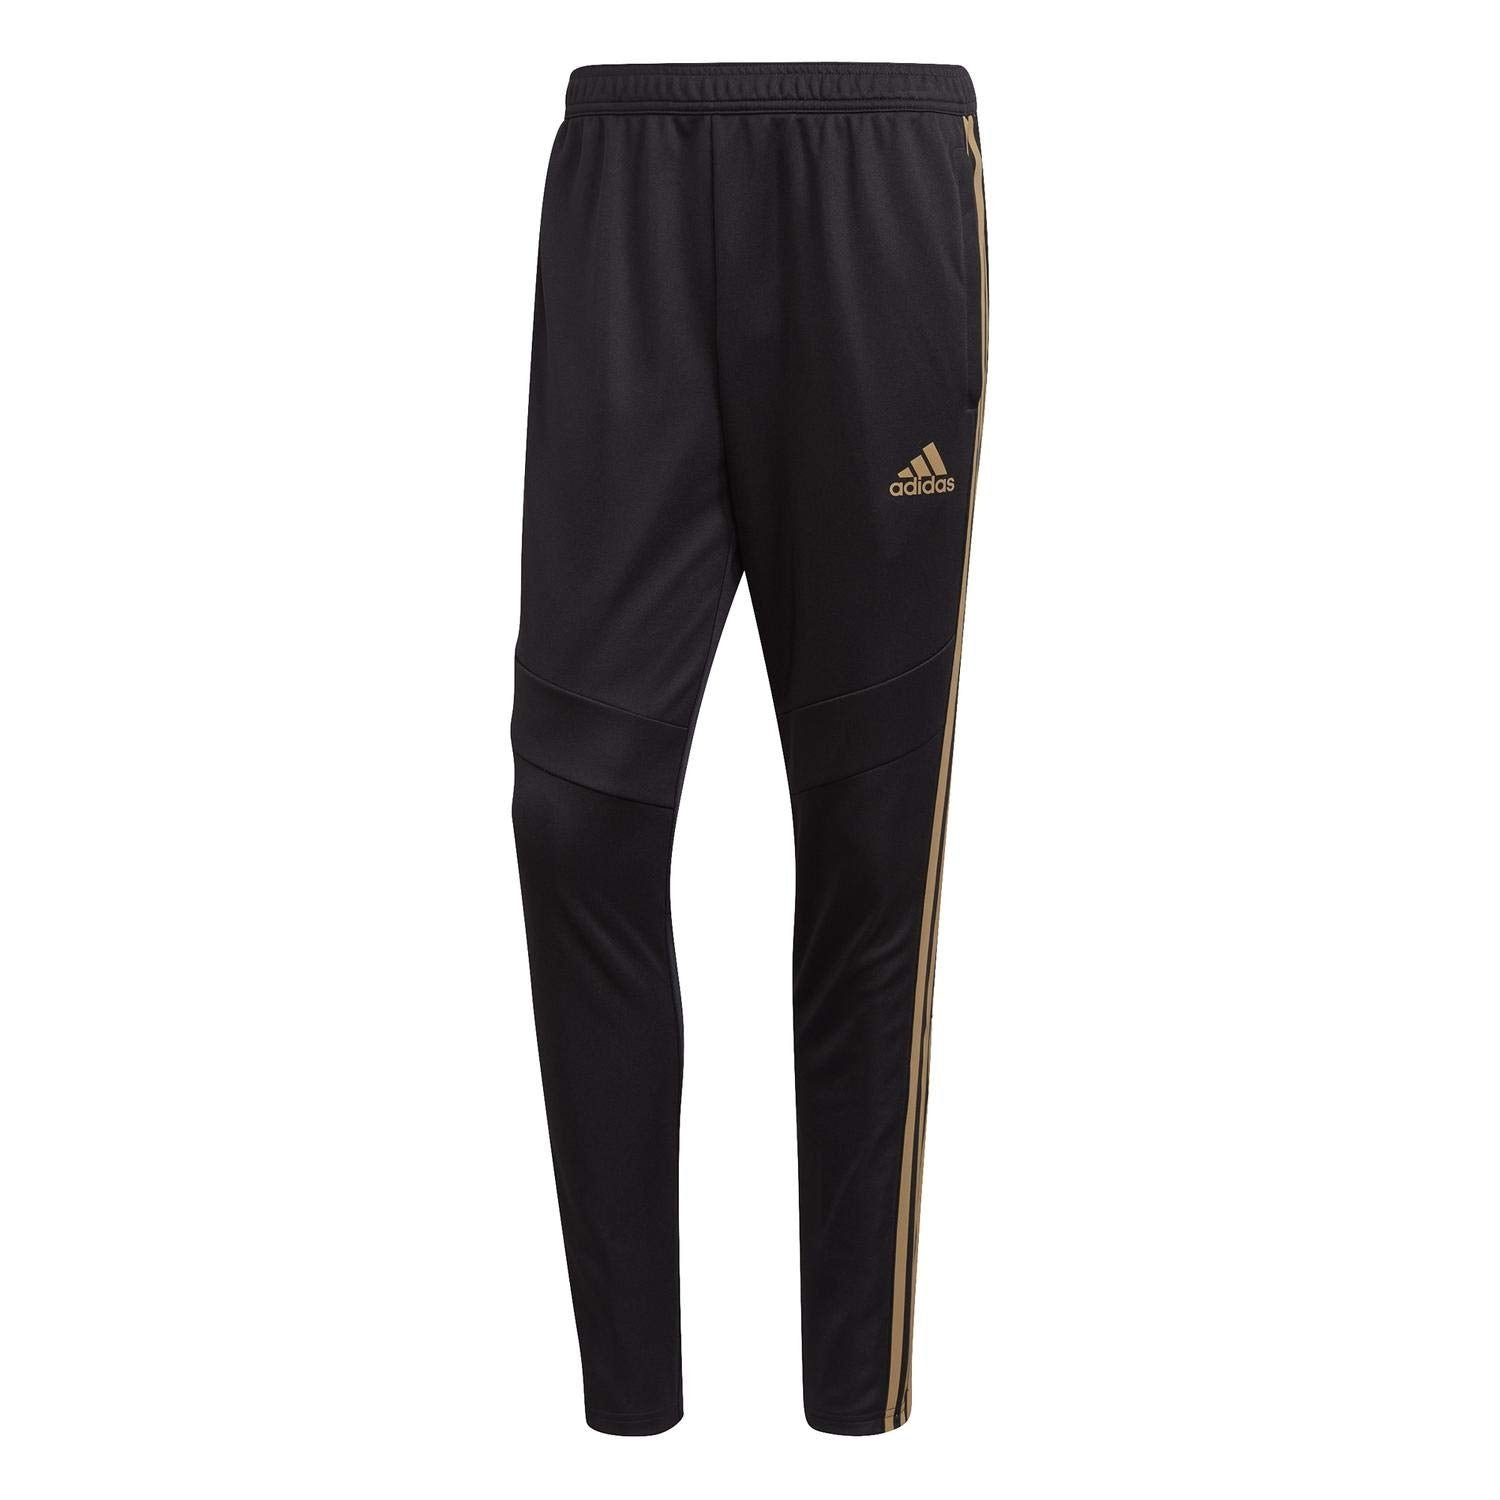 adidas Men's Soccer Tiro 19 Training Pants